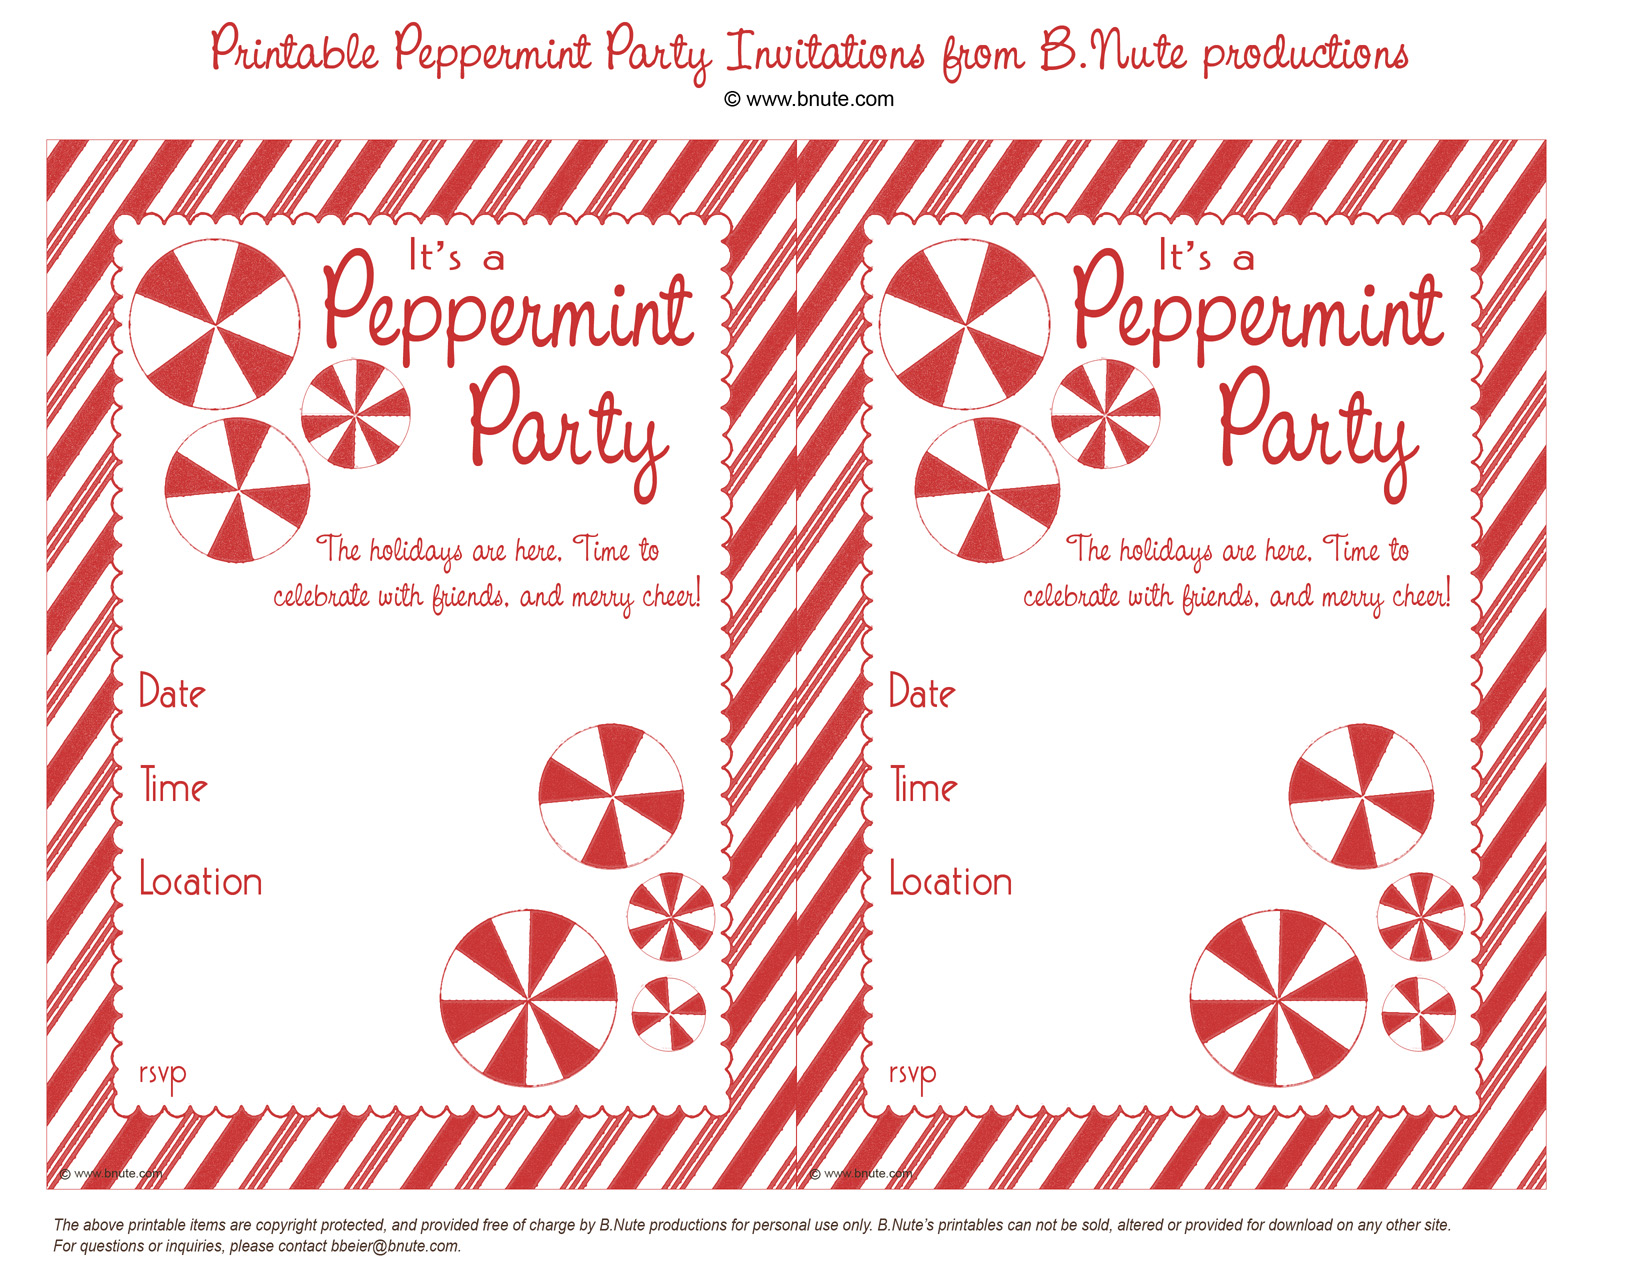 Holiday Party: Free Printable Peppermint Party Invitations and Ideas